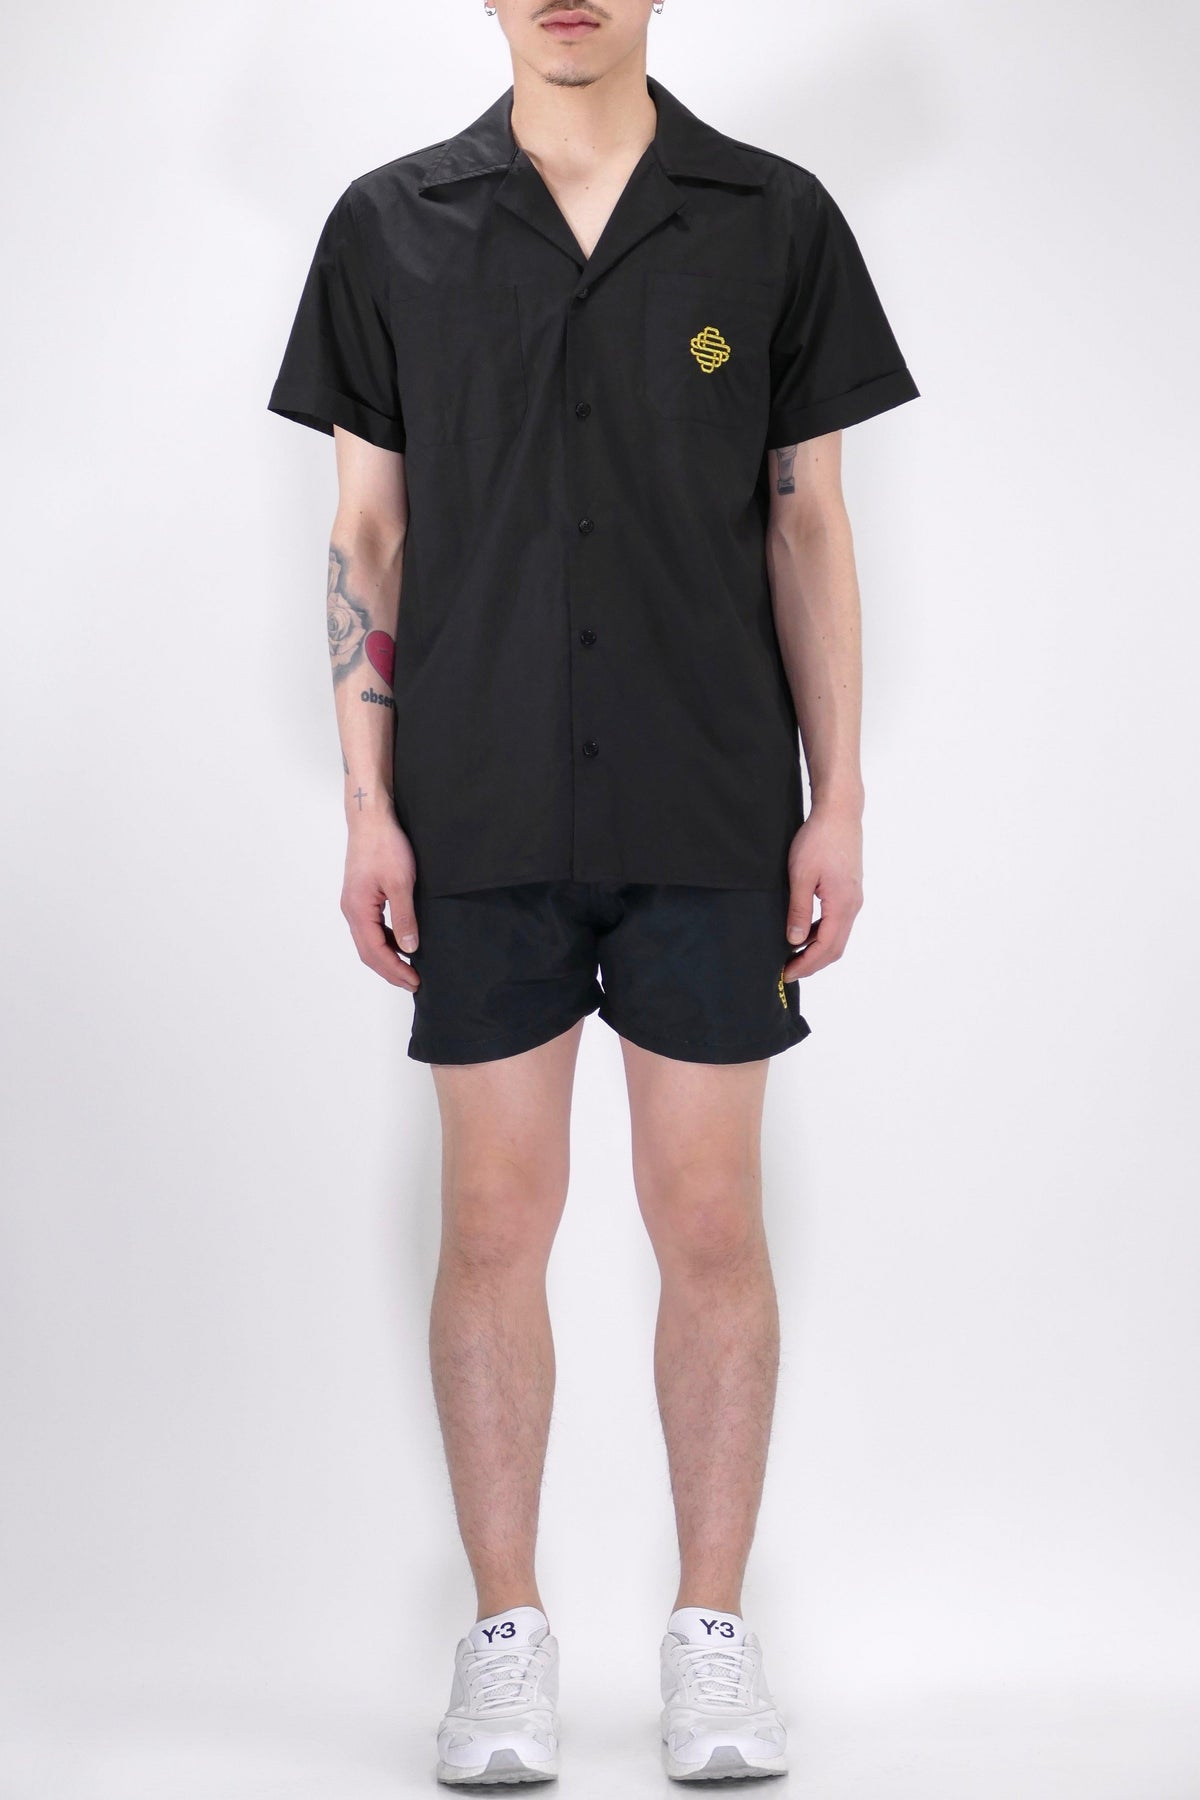 SSS World Corp Cuban Short Sleeve Shirt Black